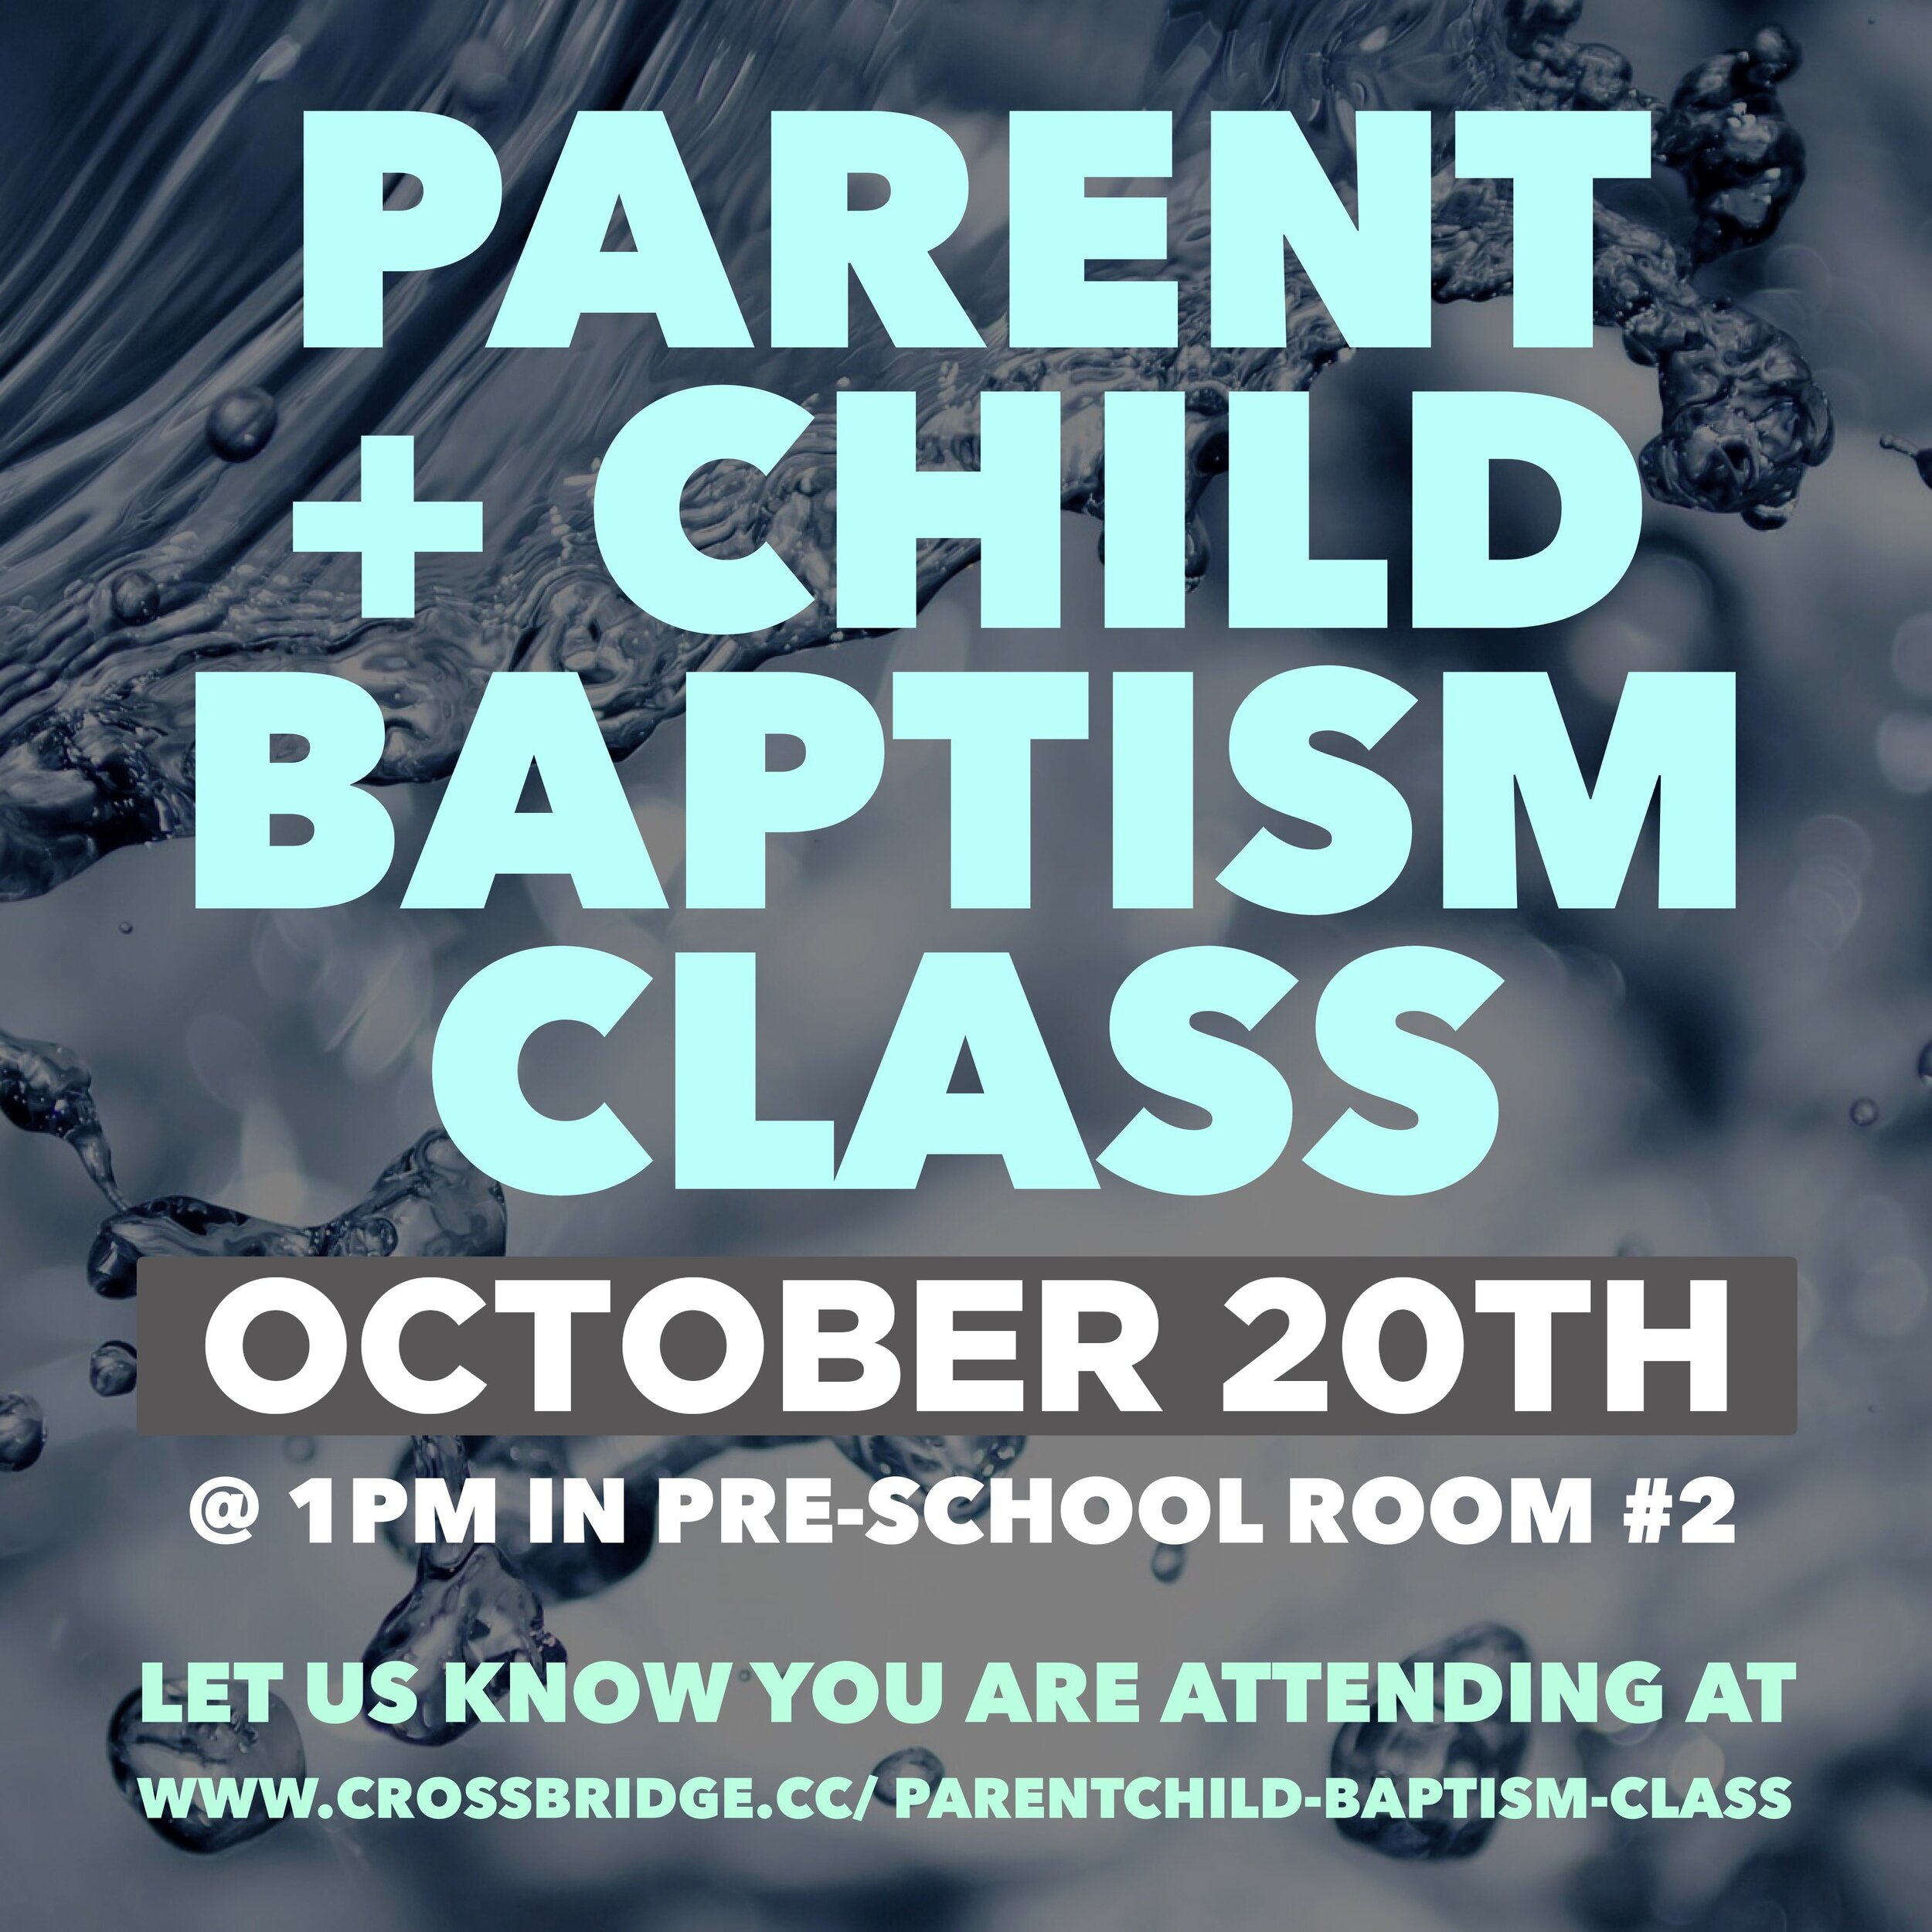 PARENT+CHILD BAPTISM CLASS | OCT. 20   Has your child been asking questions about what it means to have Jesus in their heart? Do they want to be baptized? We offer an amazing one hour program for children in 1st-6th grade called We Believe. Click  HERE  for more information and to register.